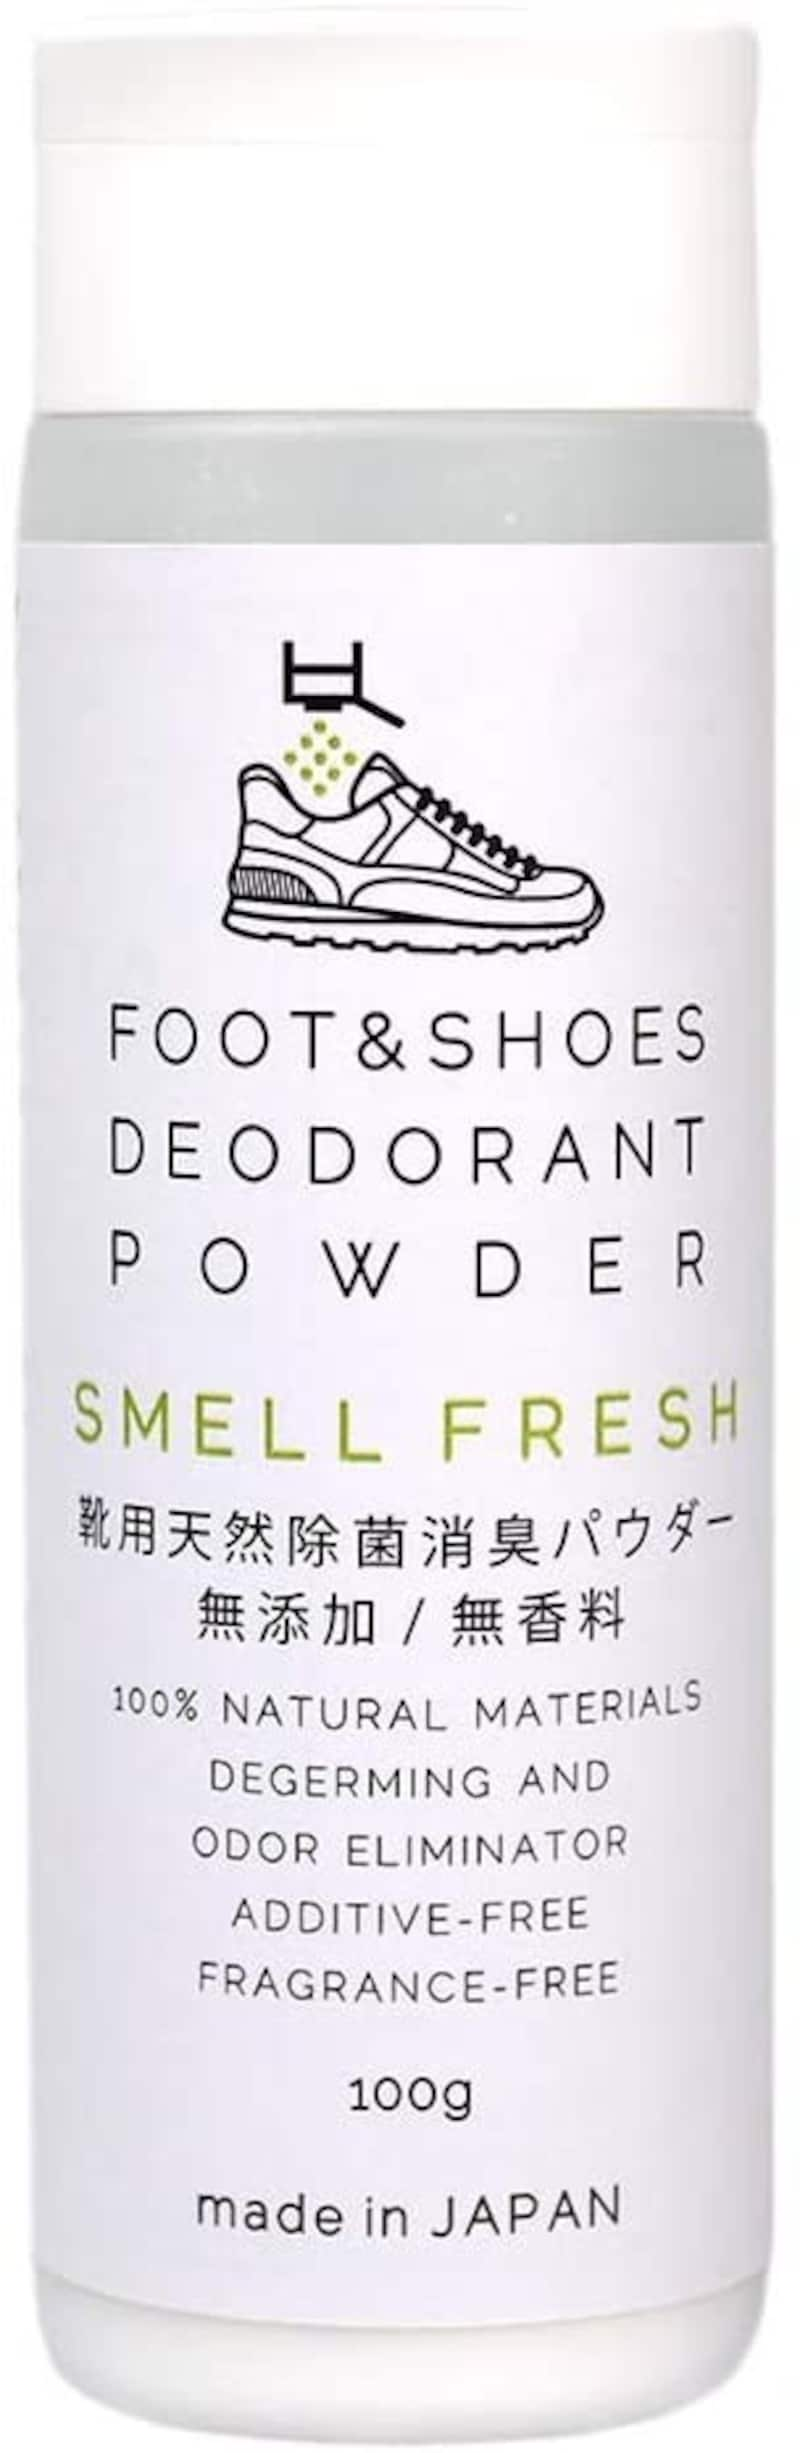 SMELL FRESH,靴の消臭パウダー